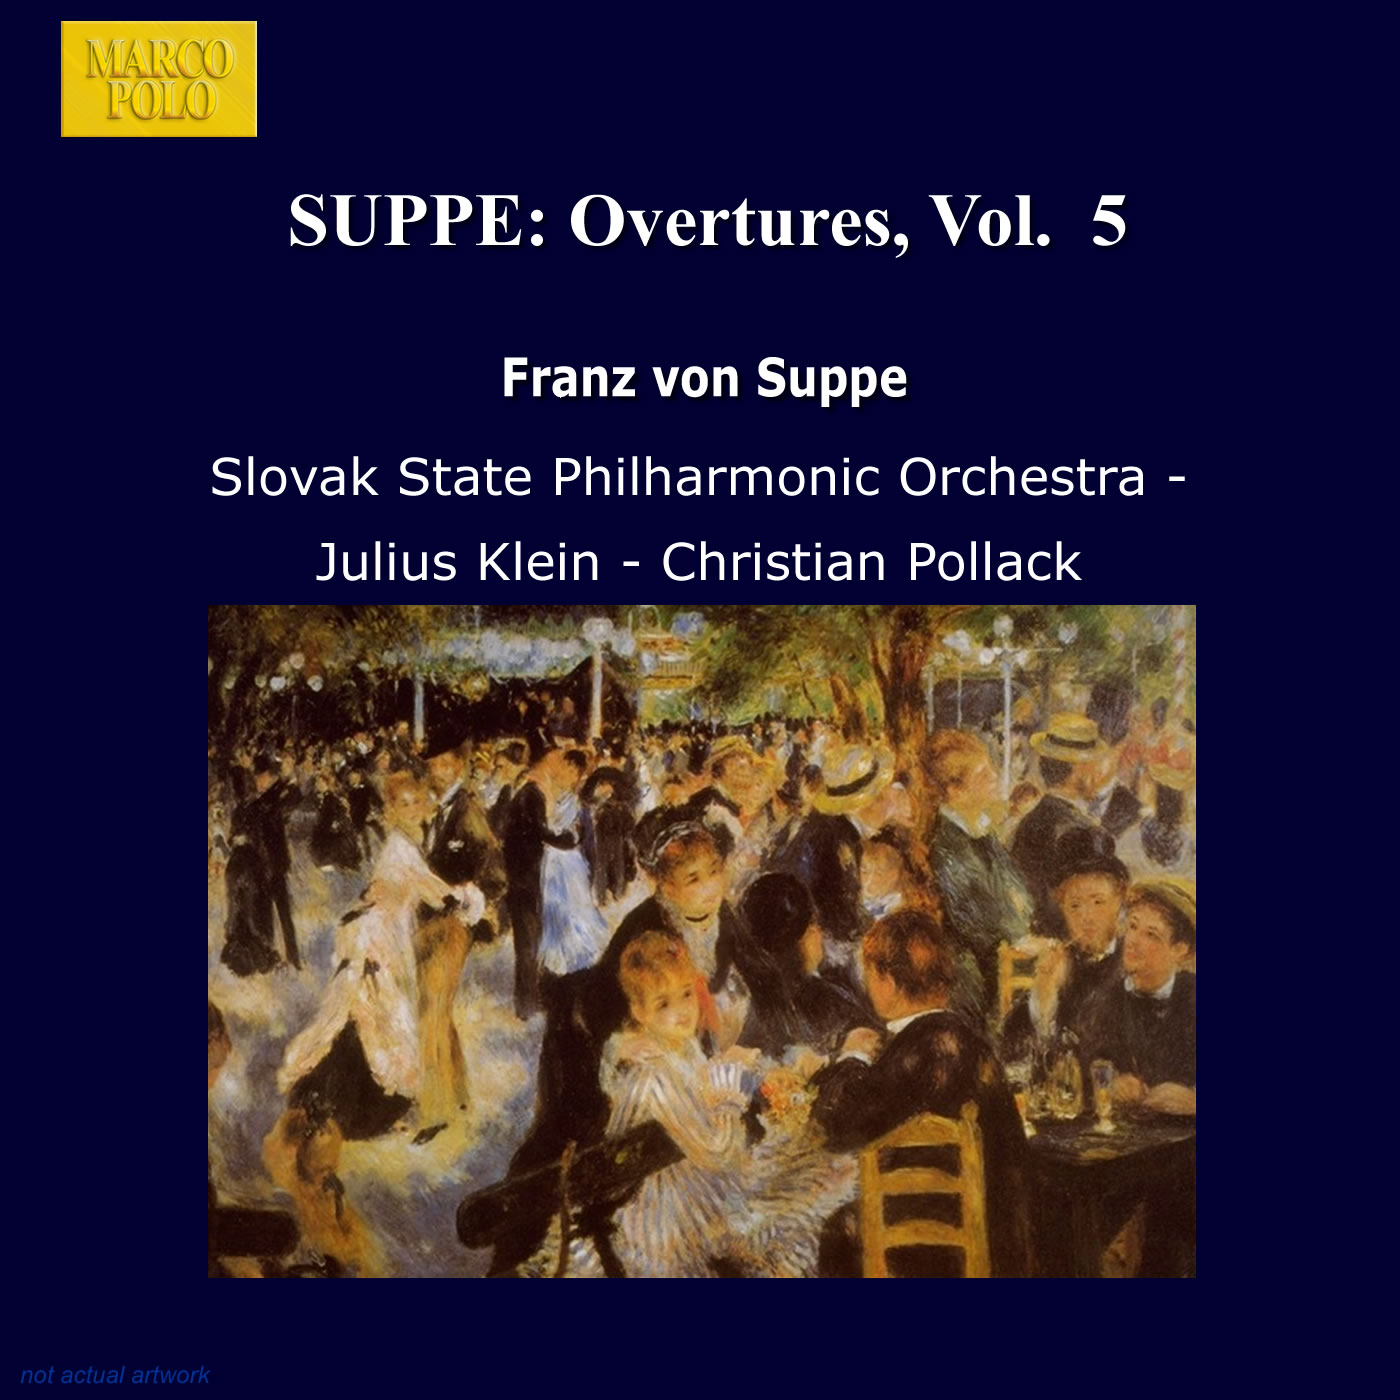 SUPPE: Overtures, Vol  5 Classical Naxos - Marco Polo